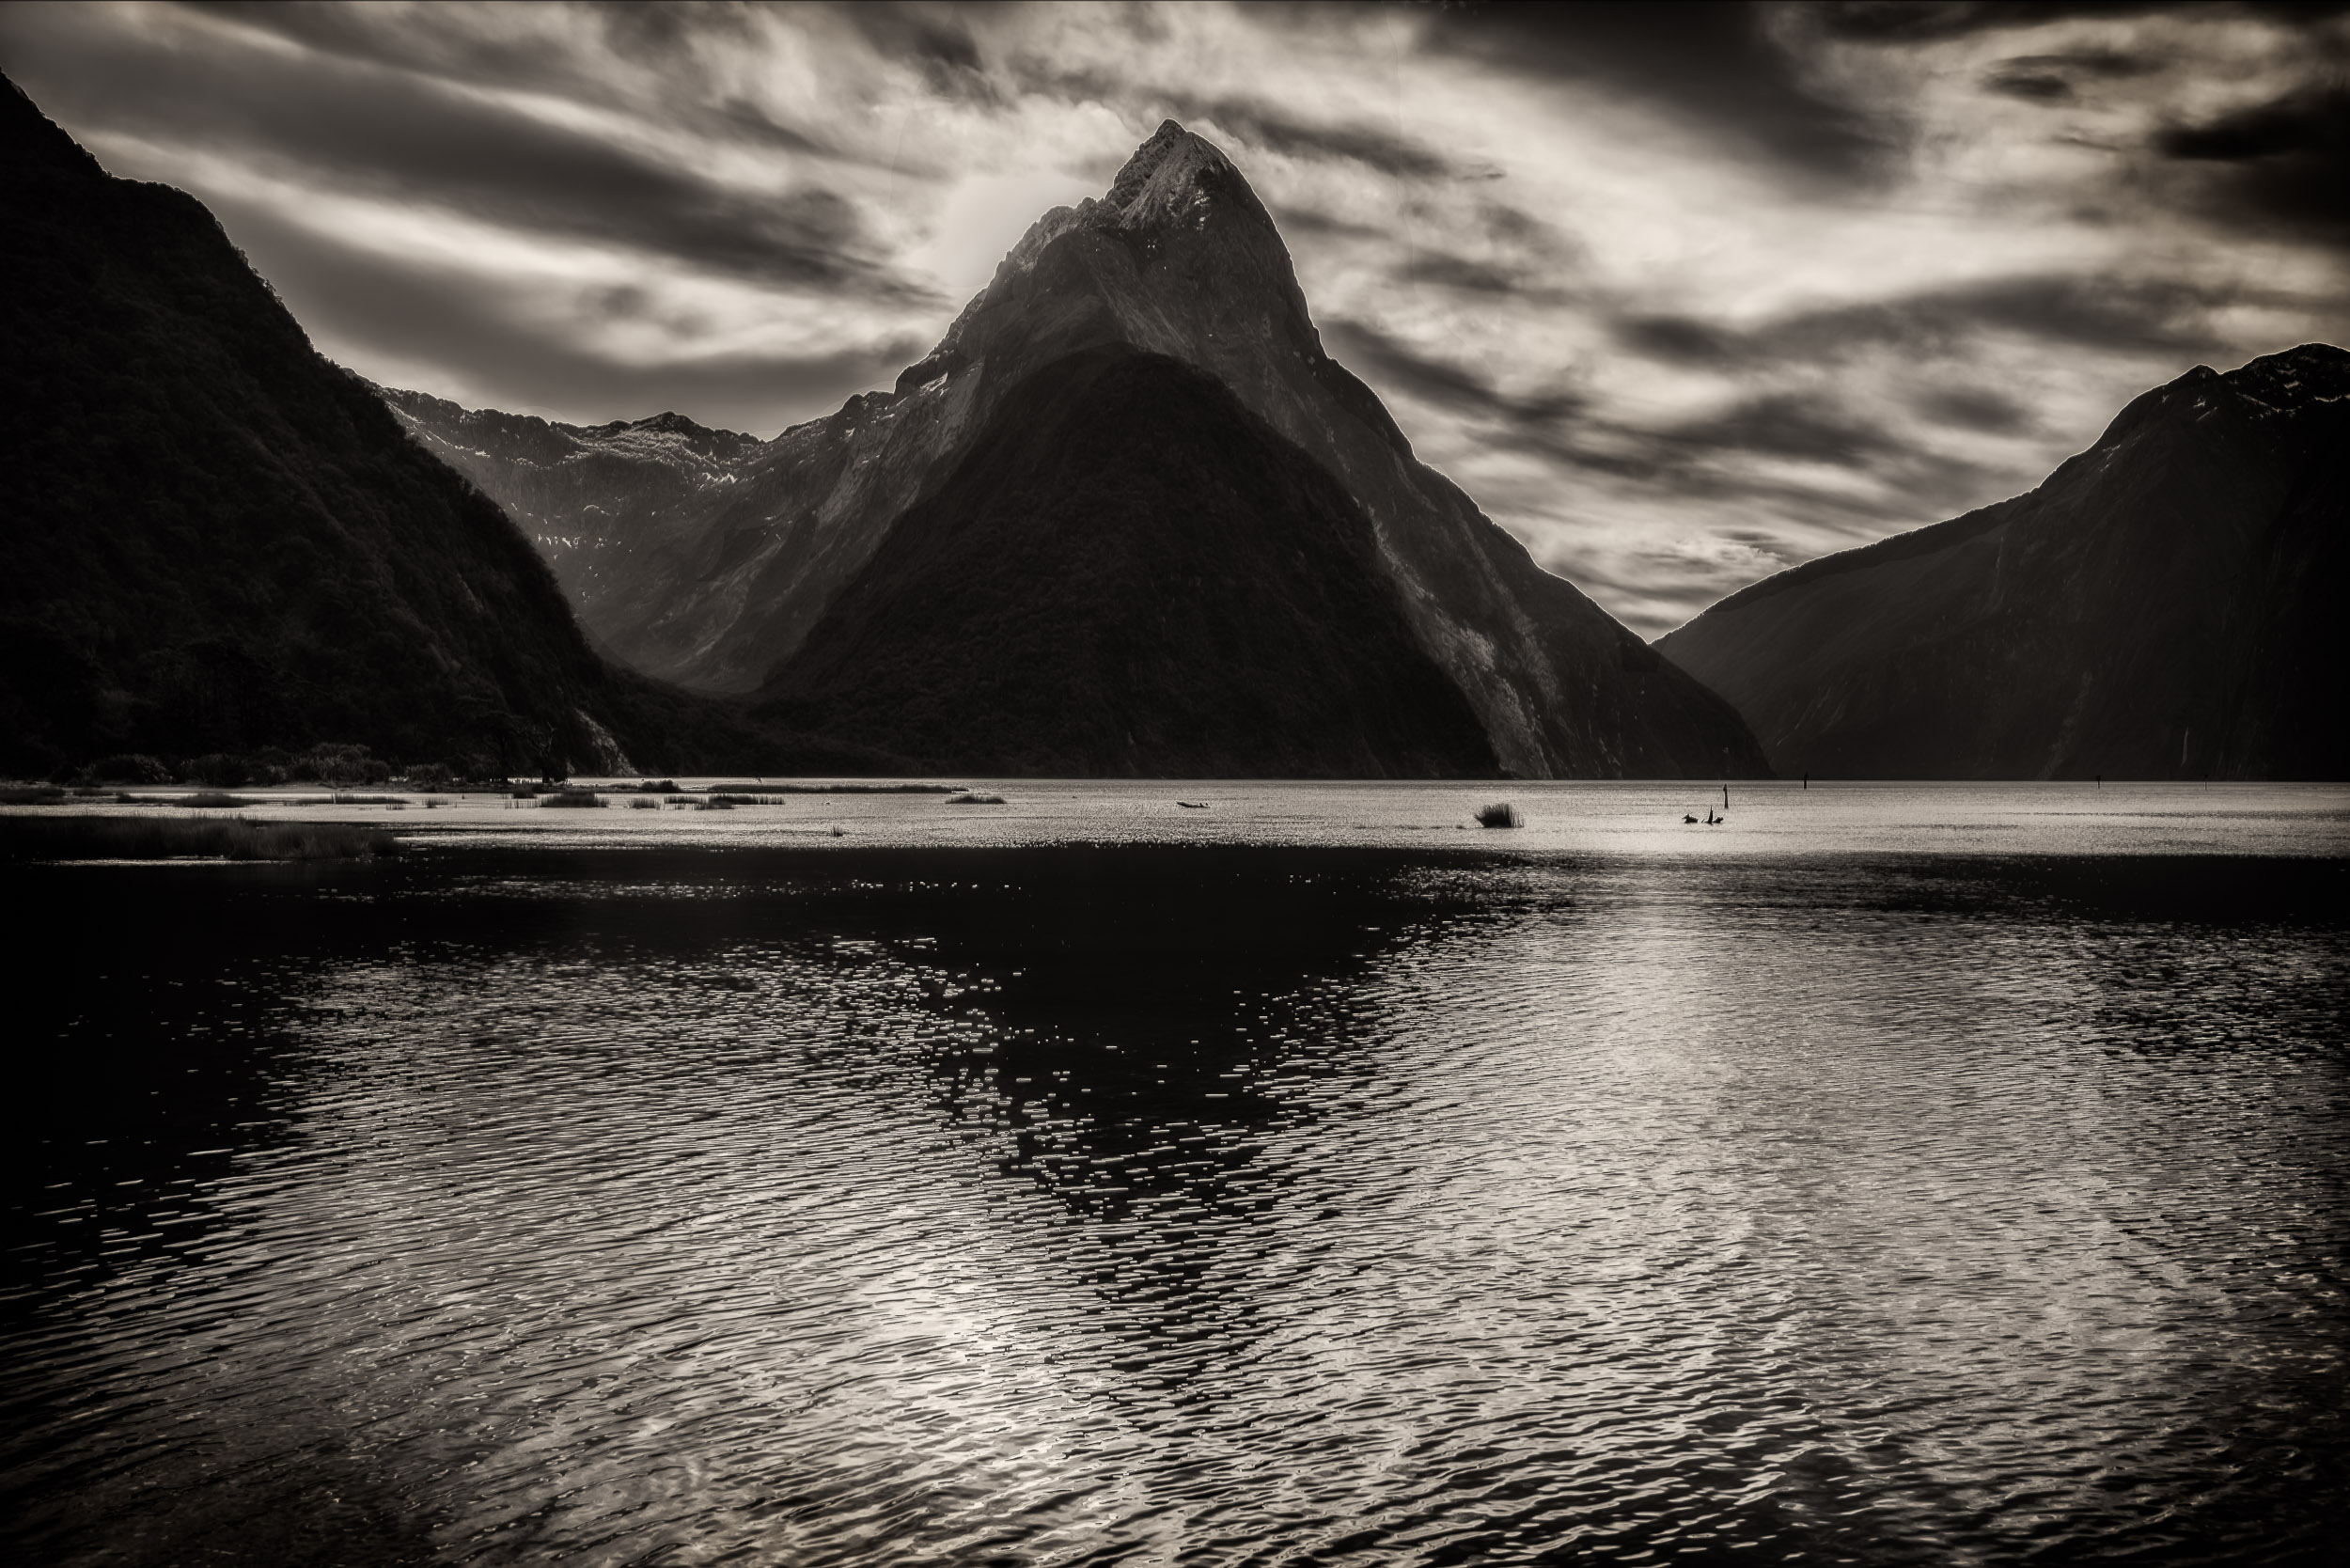 A lovely reflection of    Mitre Peak    on    Milford Sound    in Fiordland,    New Zealand   .